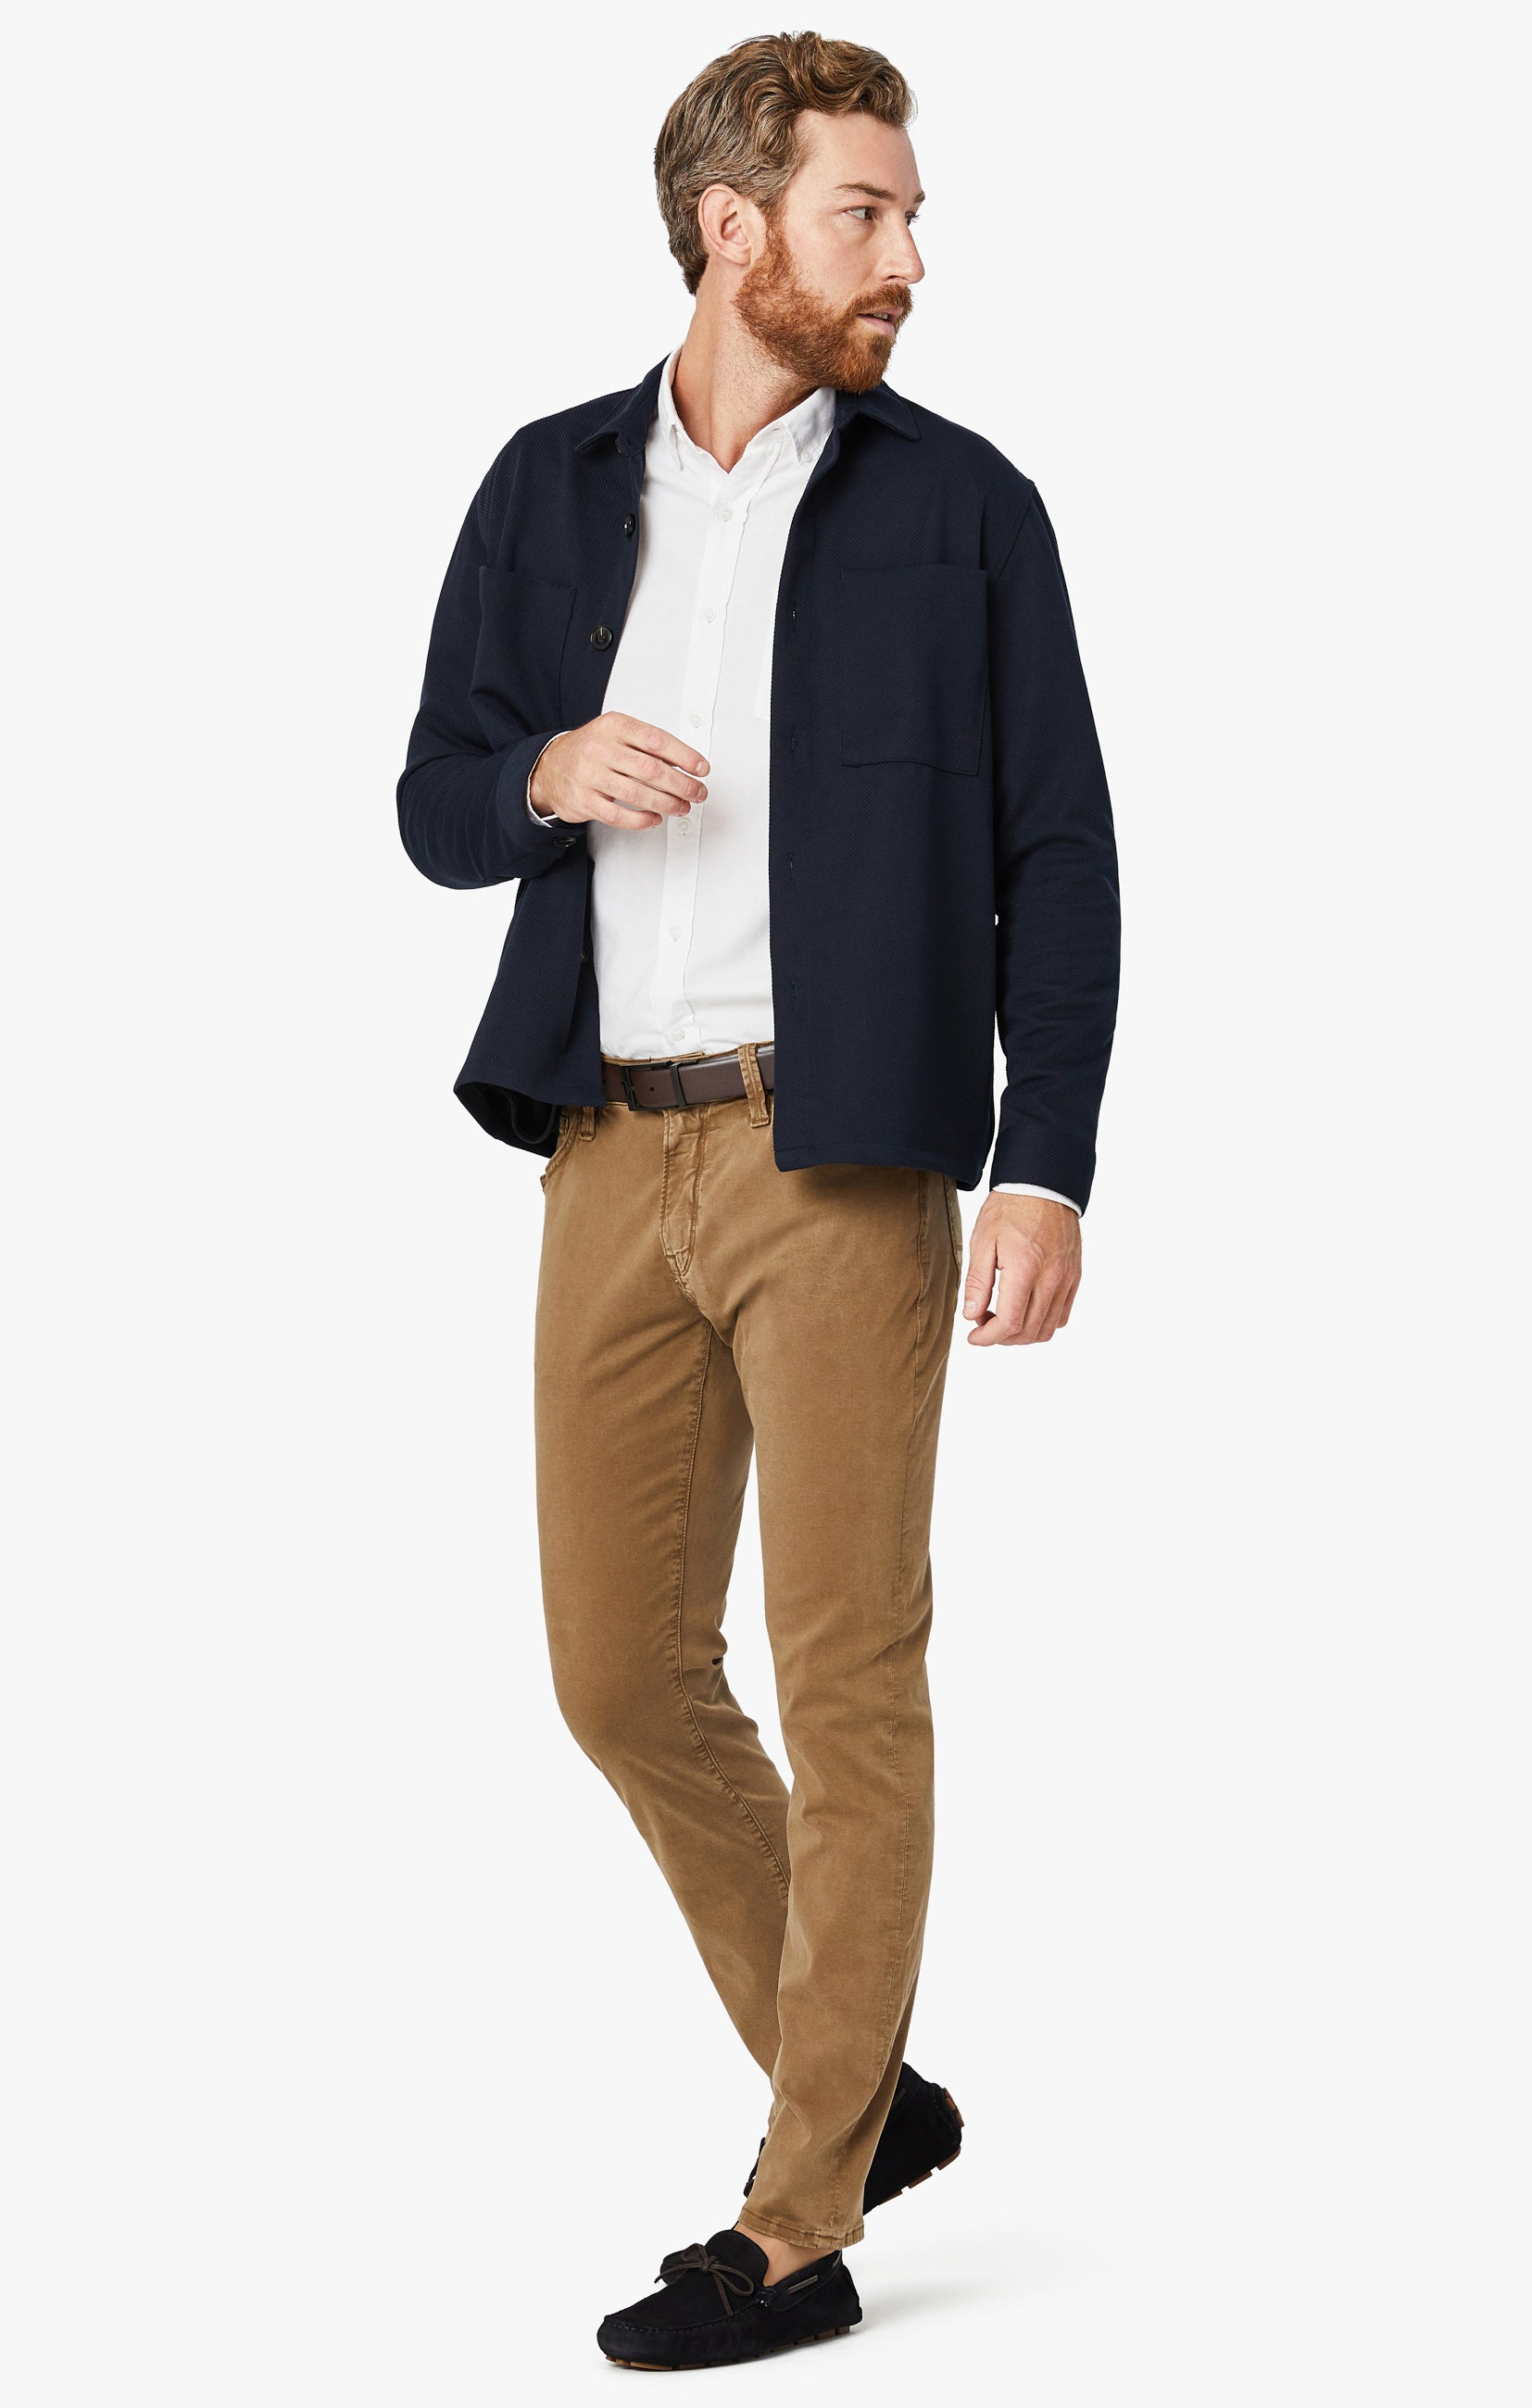 Cool Tapered Leg Pants In Tobacco Twill Image 1